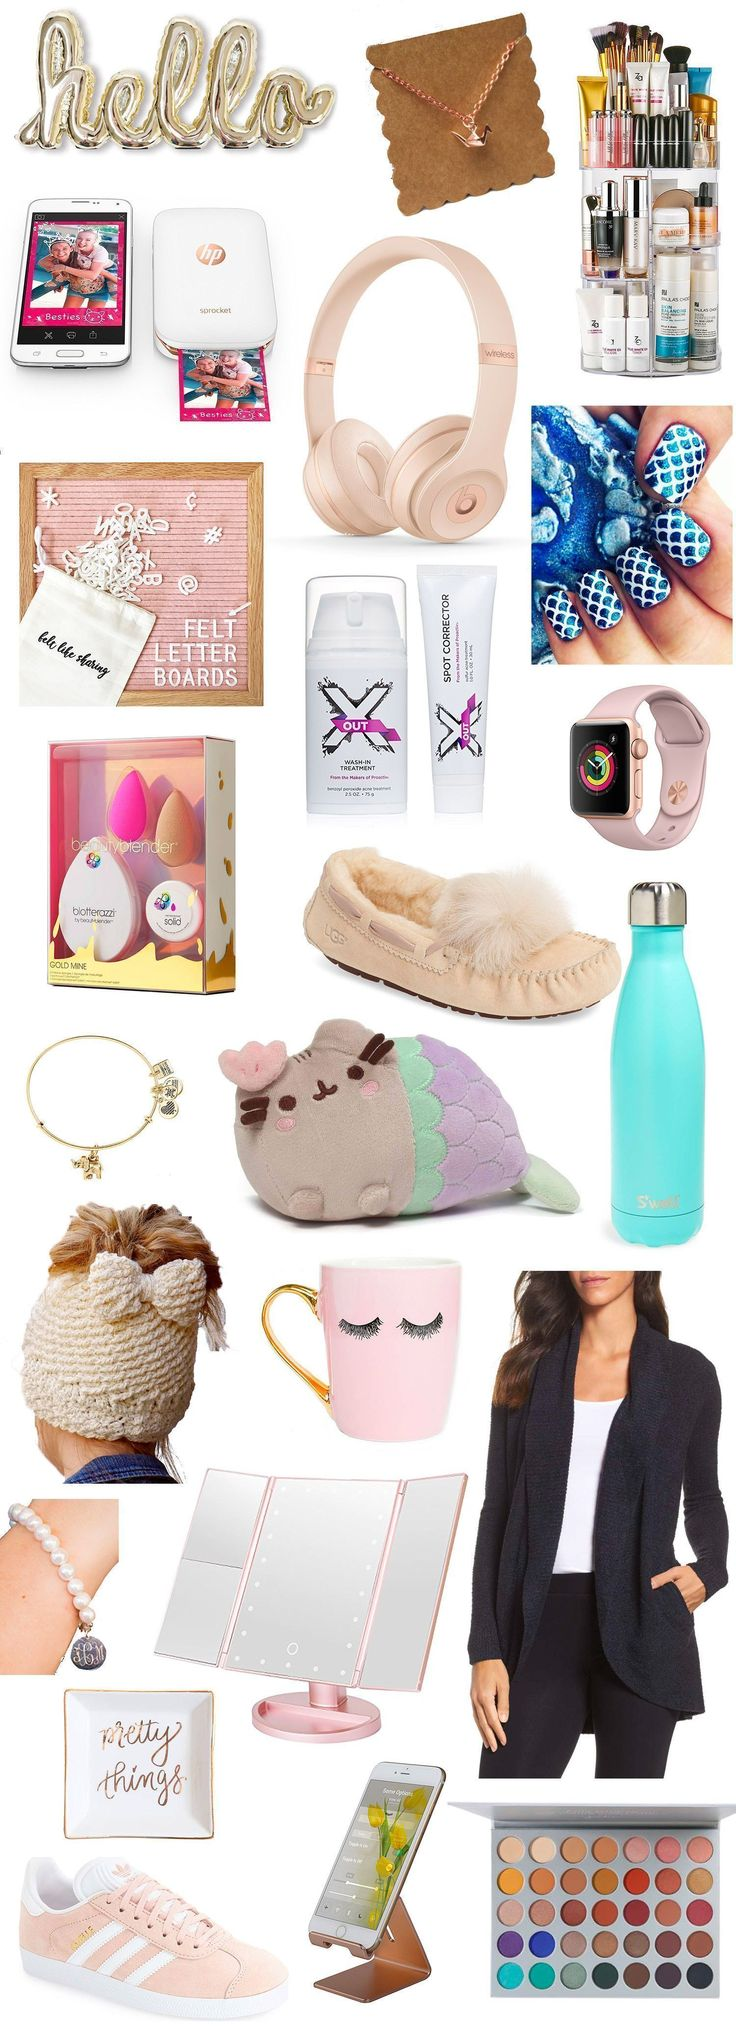 The ultimate Christmas gift guide for teenage girls! TONS of cute and unique Christmas gift ideas for teens that she's guaranteed to love!   Orlando beauty and fashion blogger Ashley Brooke Nicholas   gift ideas for teens, holiday gift guide, gift guide for teens, gifts for teen girls, teenage girl gifts